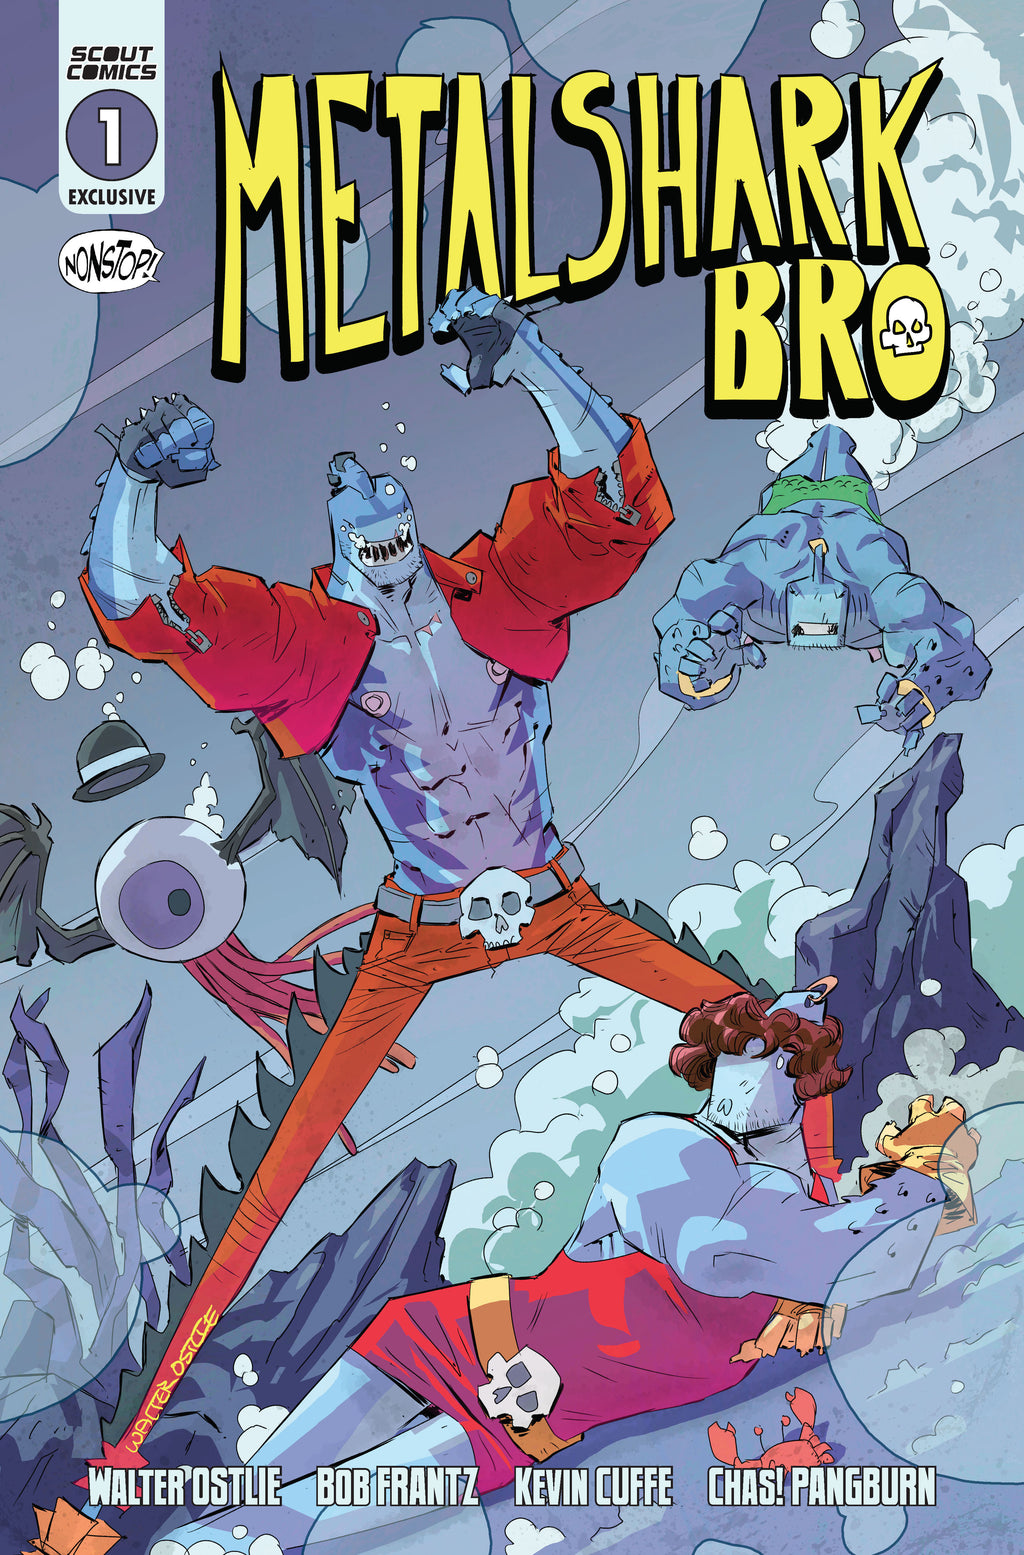 Metalshark Bro #1 - Comic Tom Namor Homage Cover